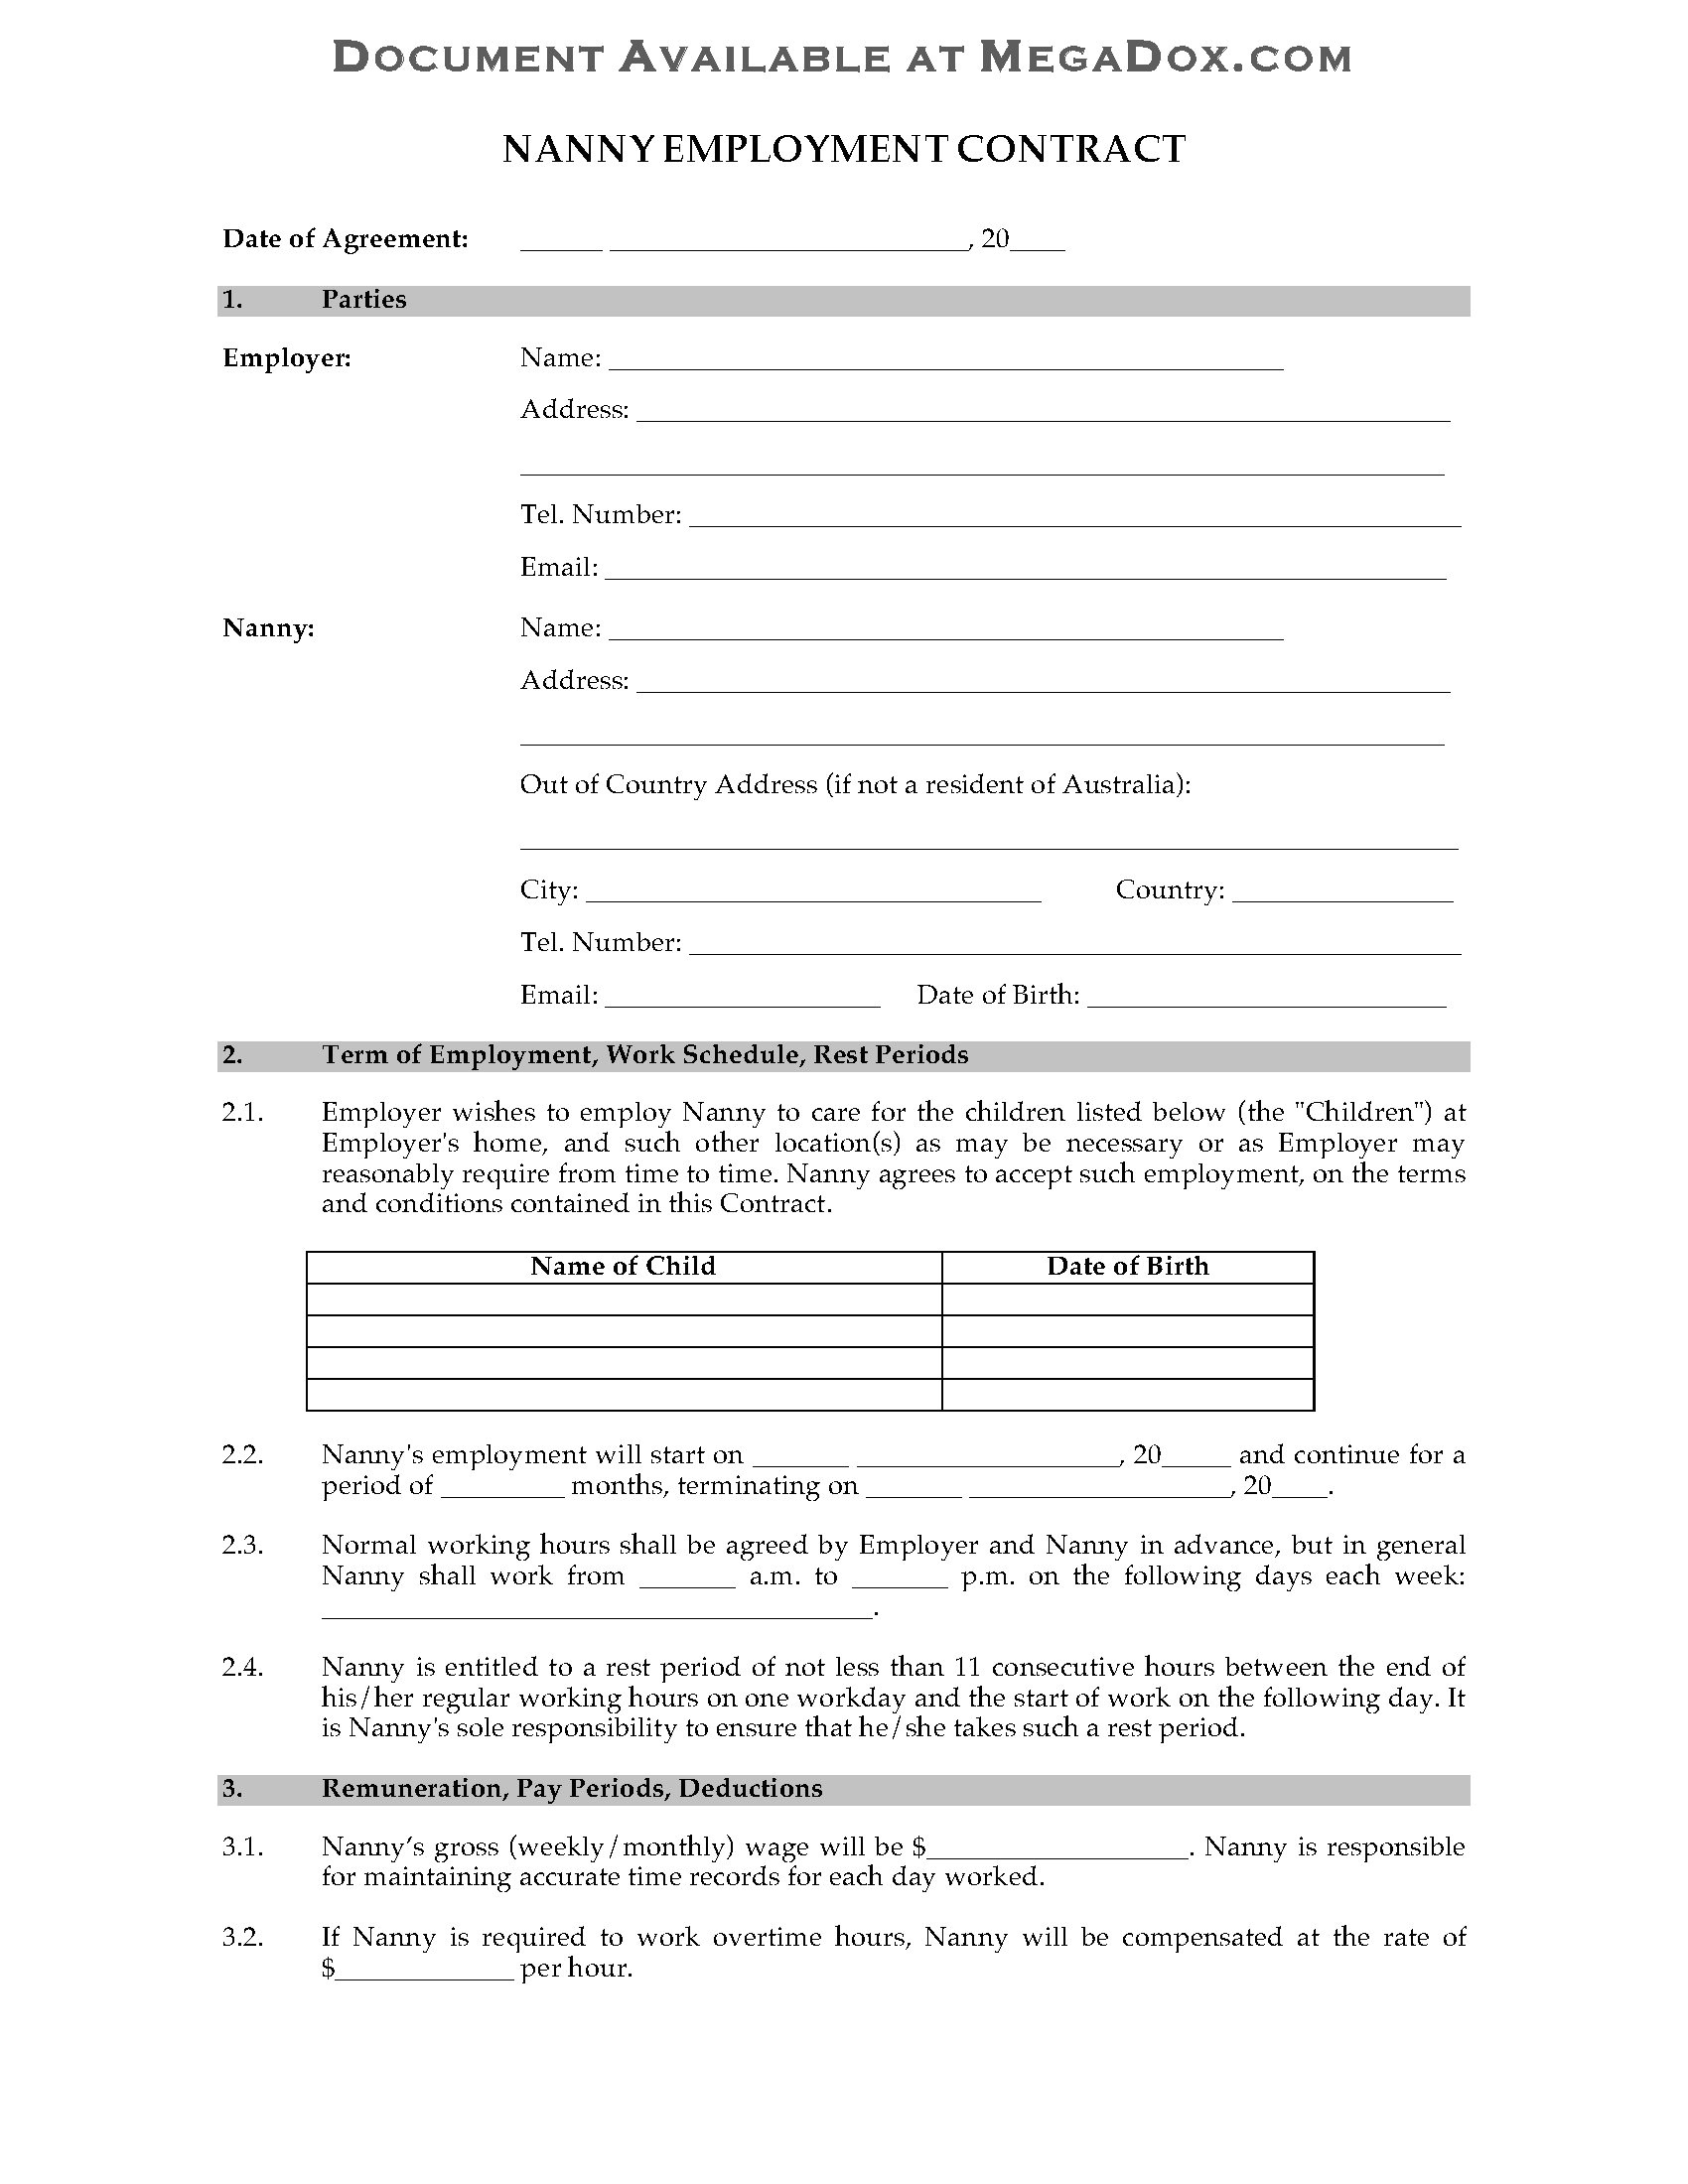 Nanny Contract Template Australia Australia Nanny Employment Contract Legal forms and